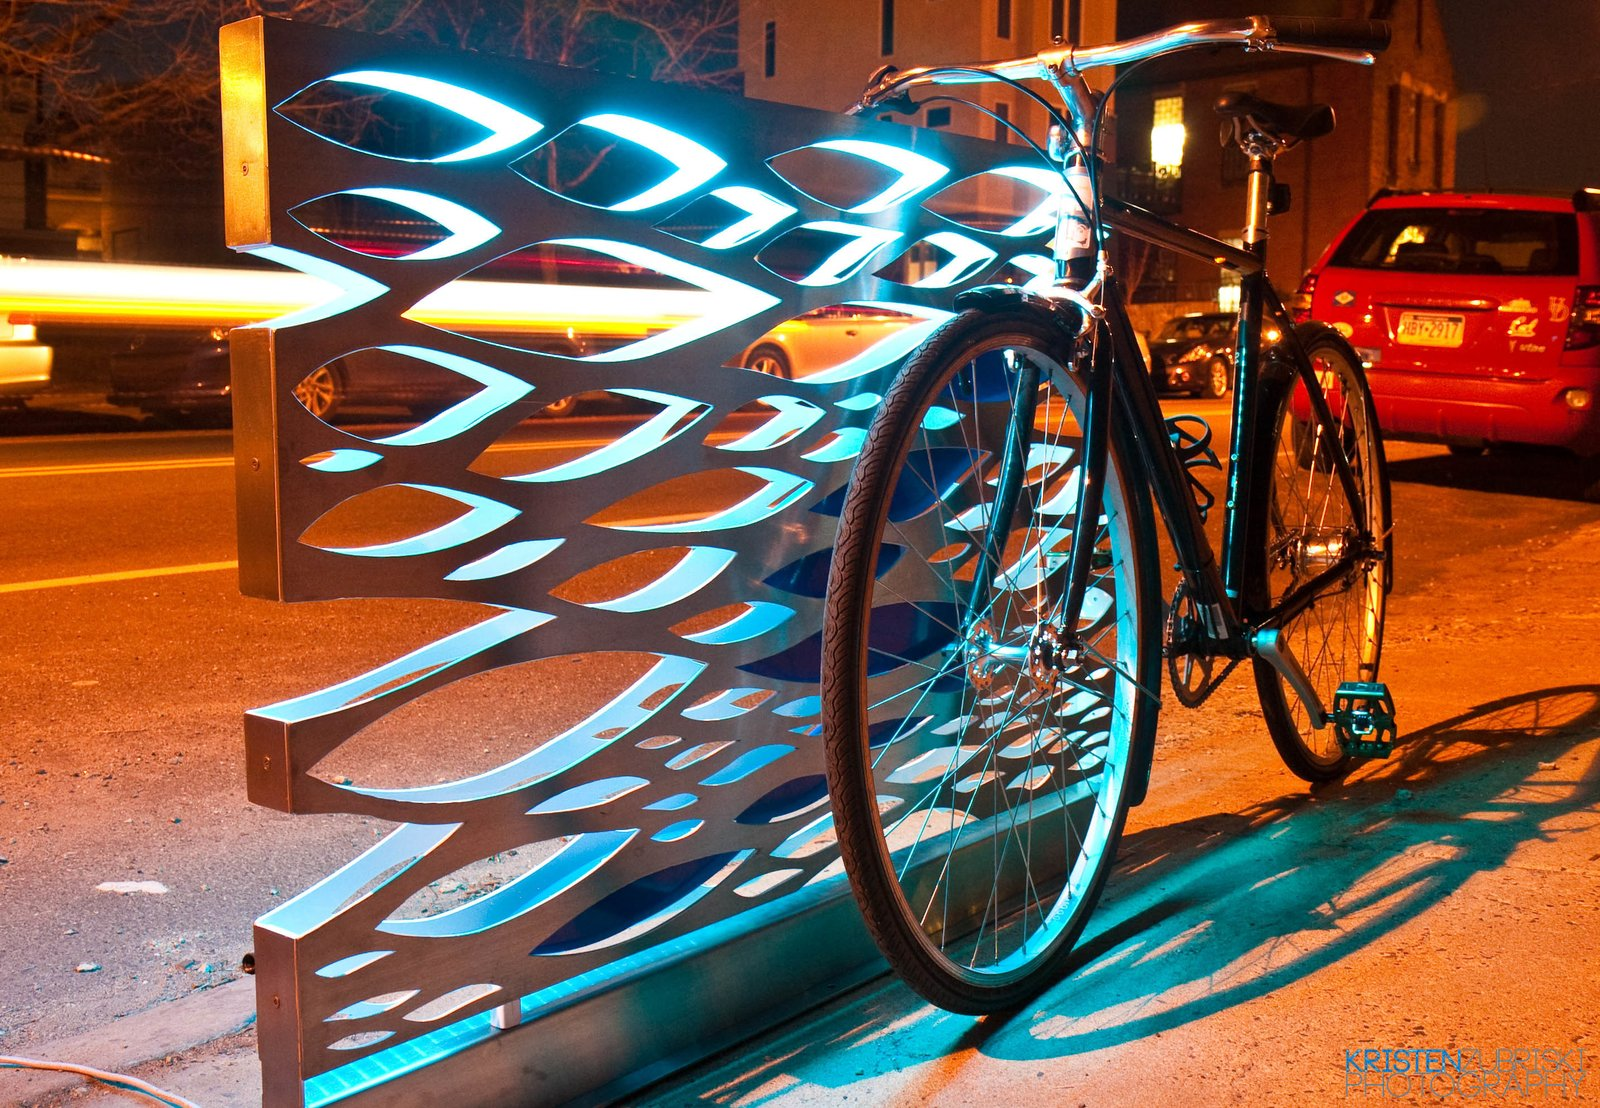 The Bicycle Rack Reimagined